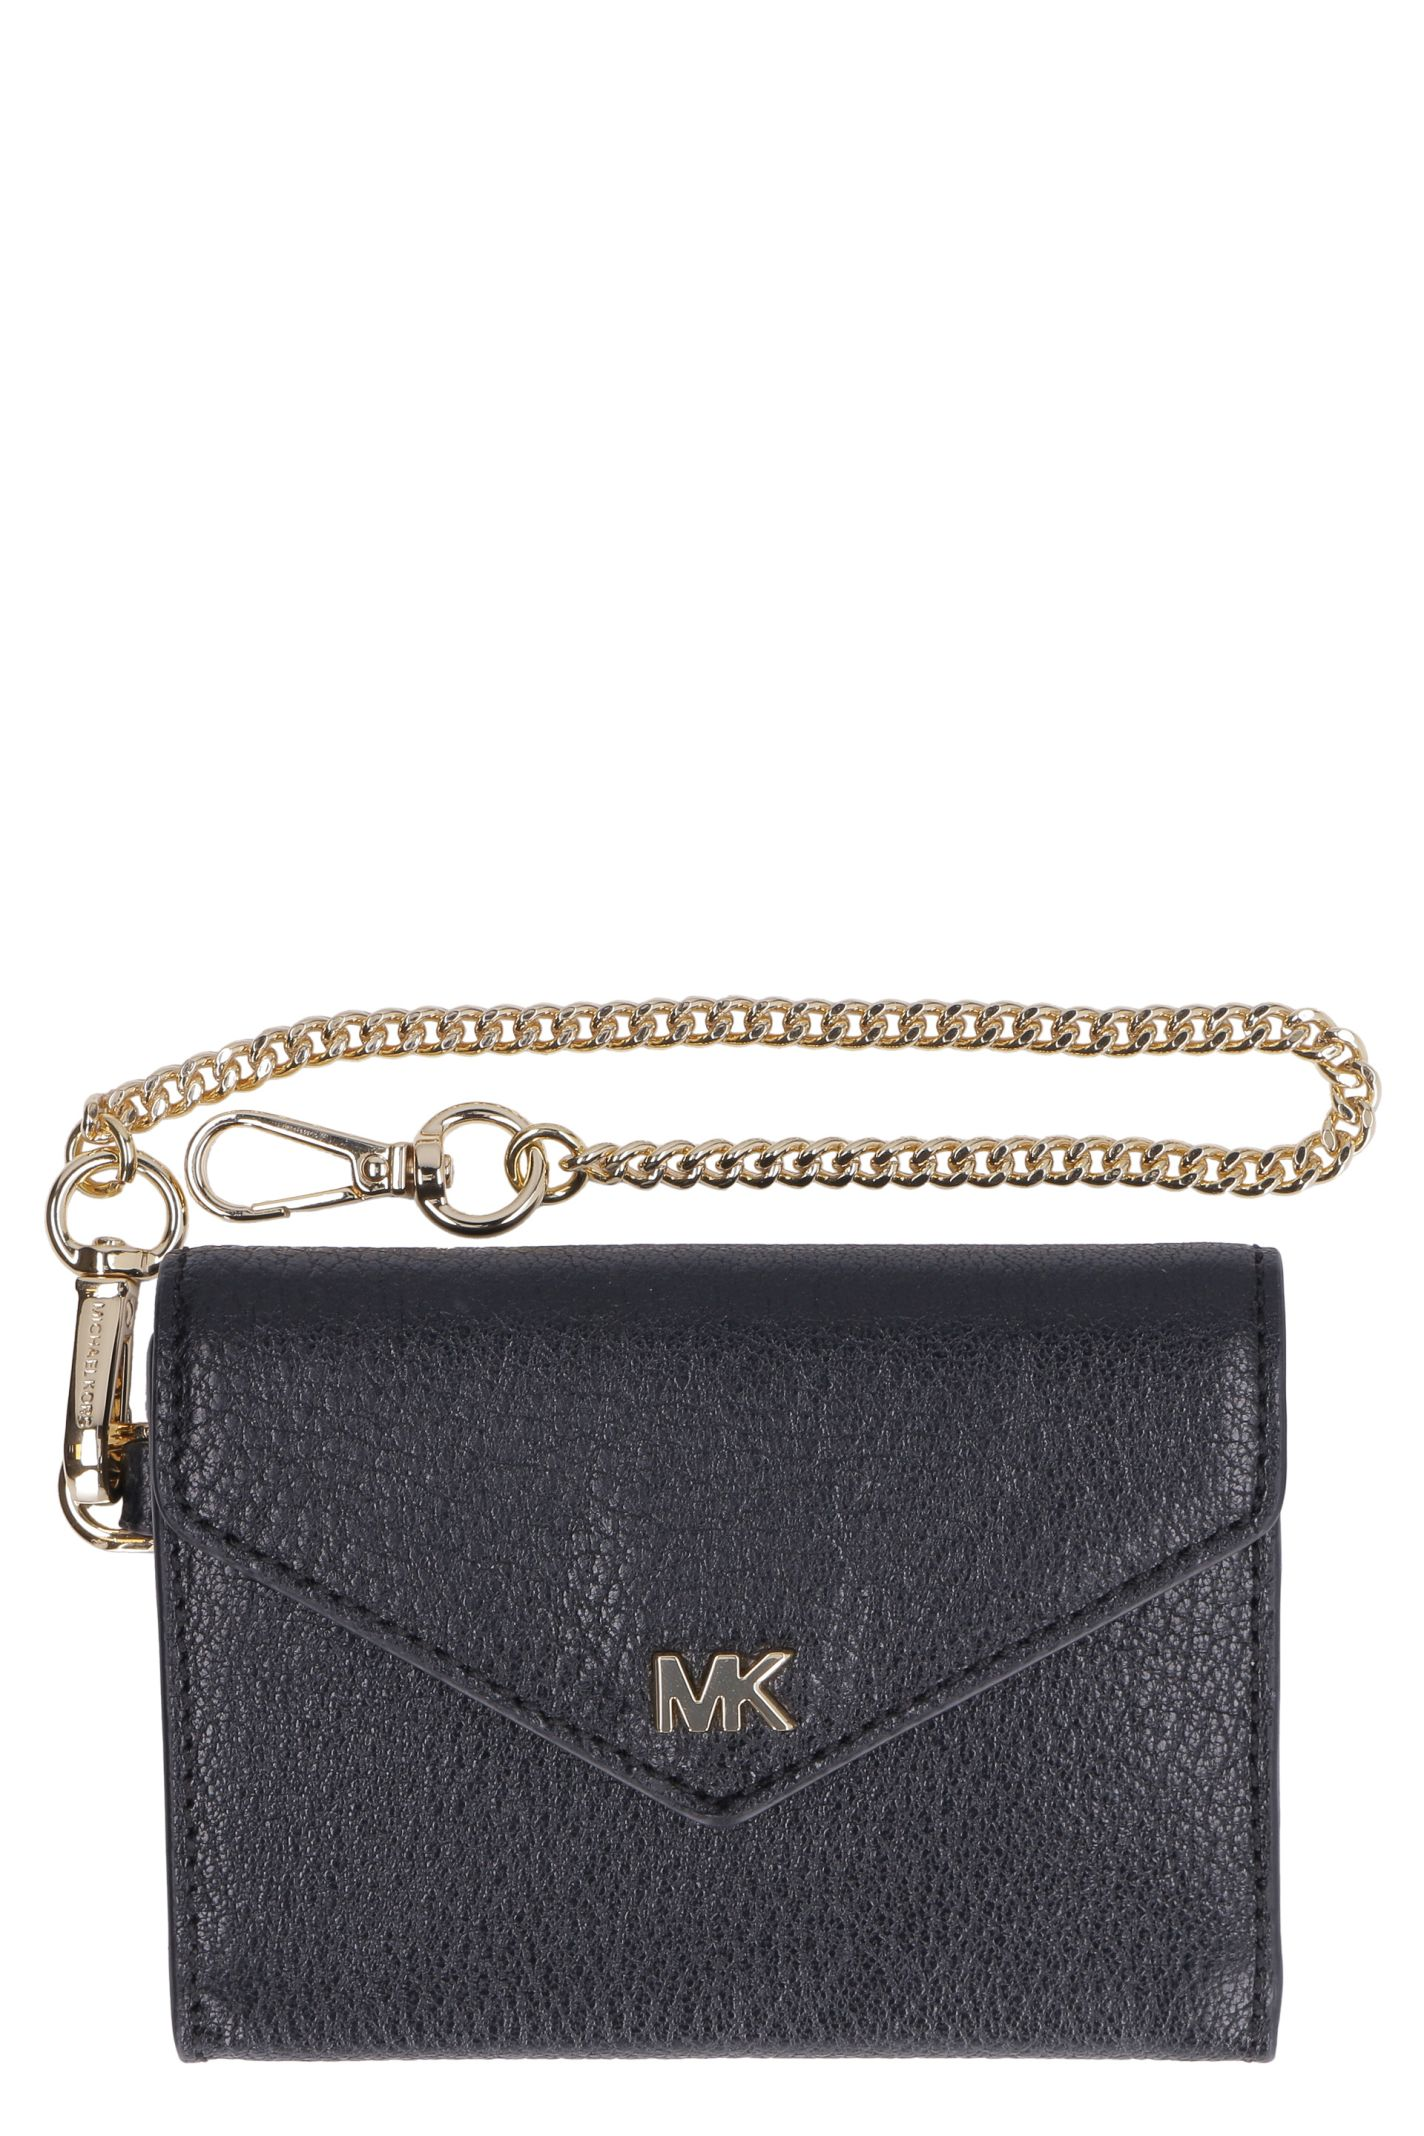 01ded632463775 Michael Kors Money Pieces Small Flap-over Leather Wallet - black ...